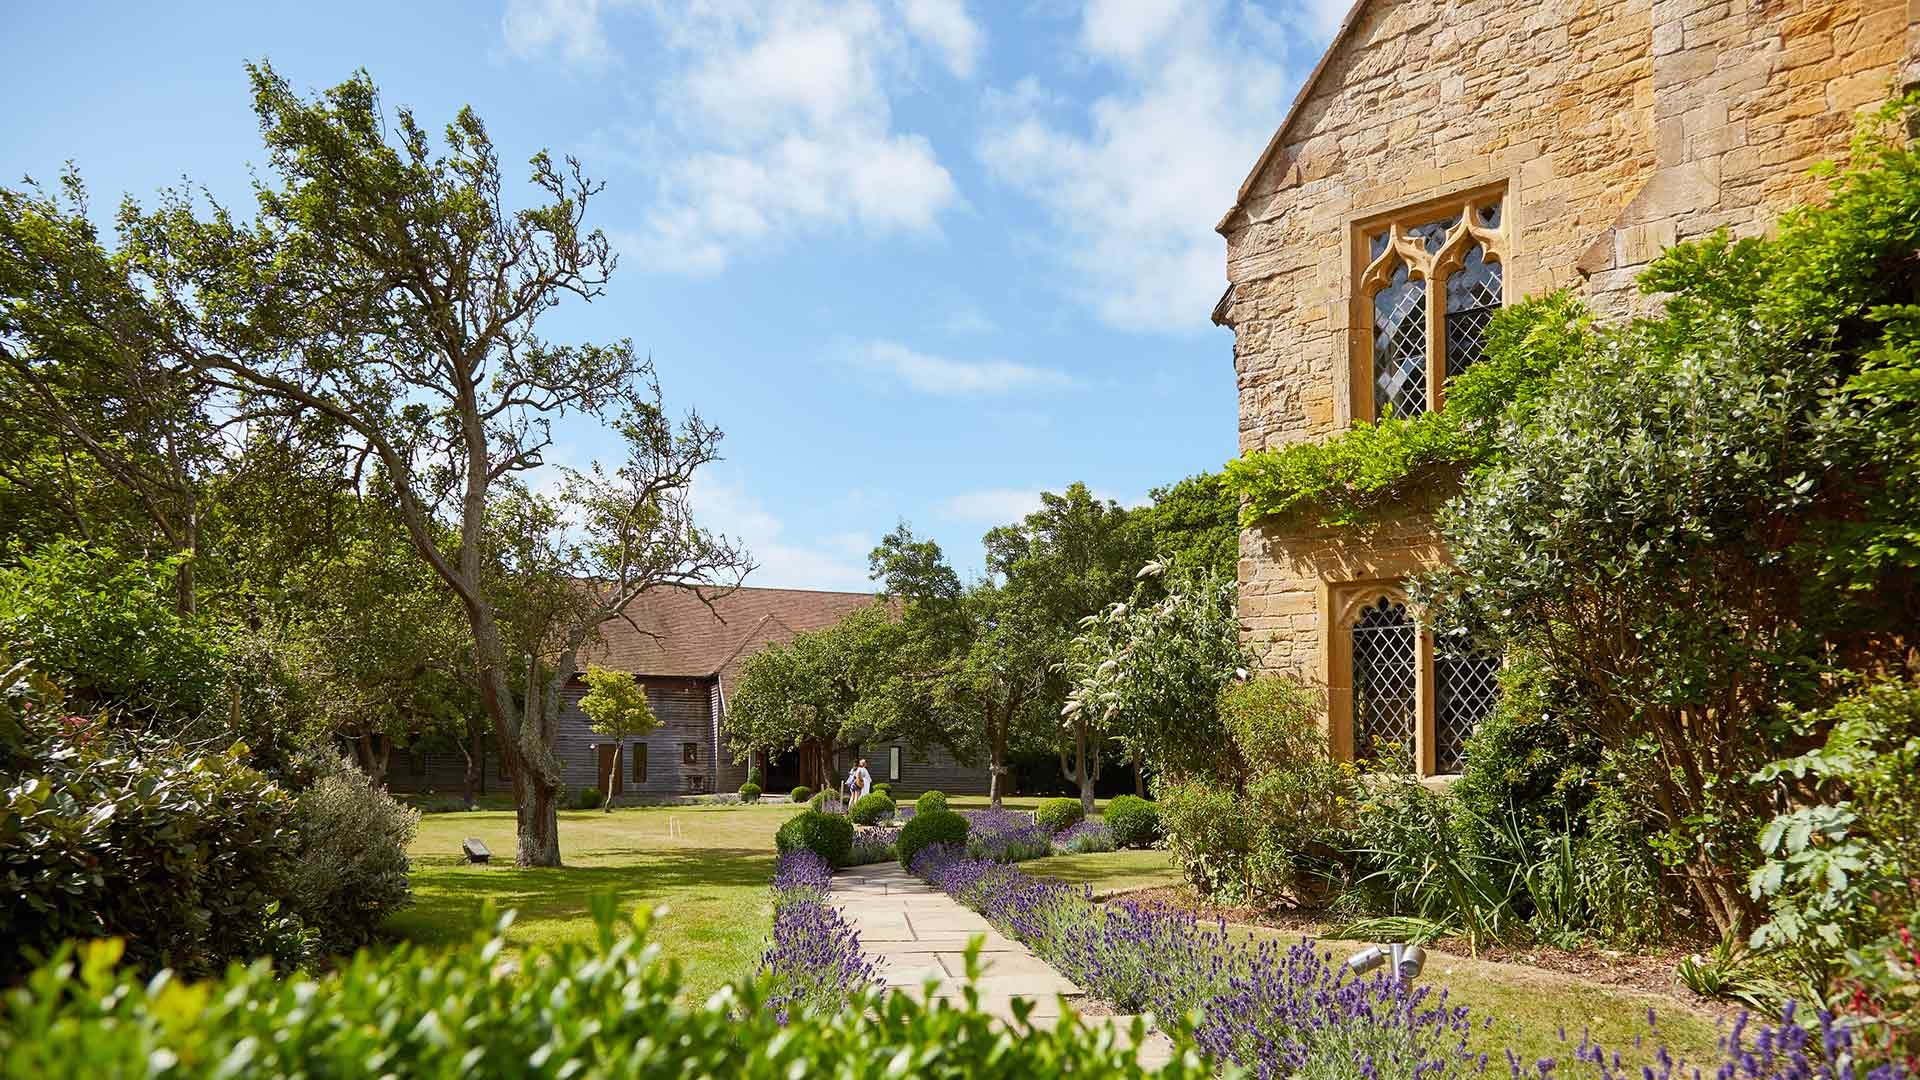 pics Bailiffscourt Hotel: The perfect beach-side getaway (without the holiday crowds)